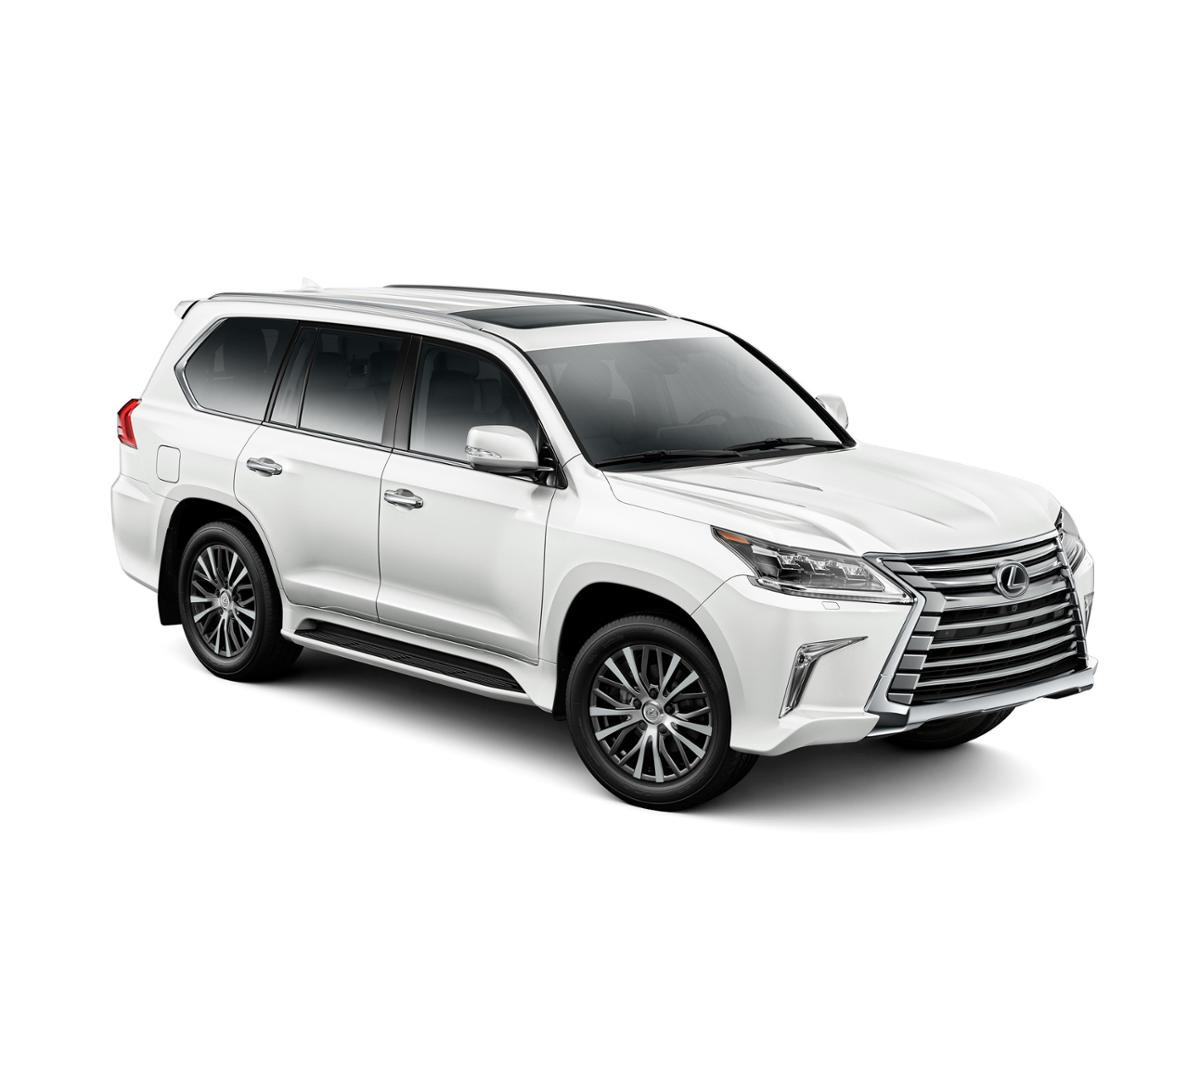 2019 Lexus LX 570 Vehicle Photo in El Monte, CA 91731